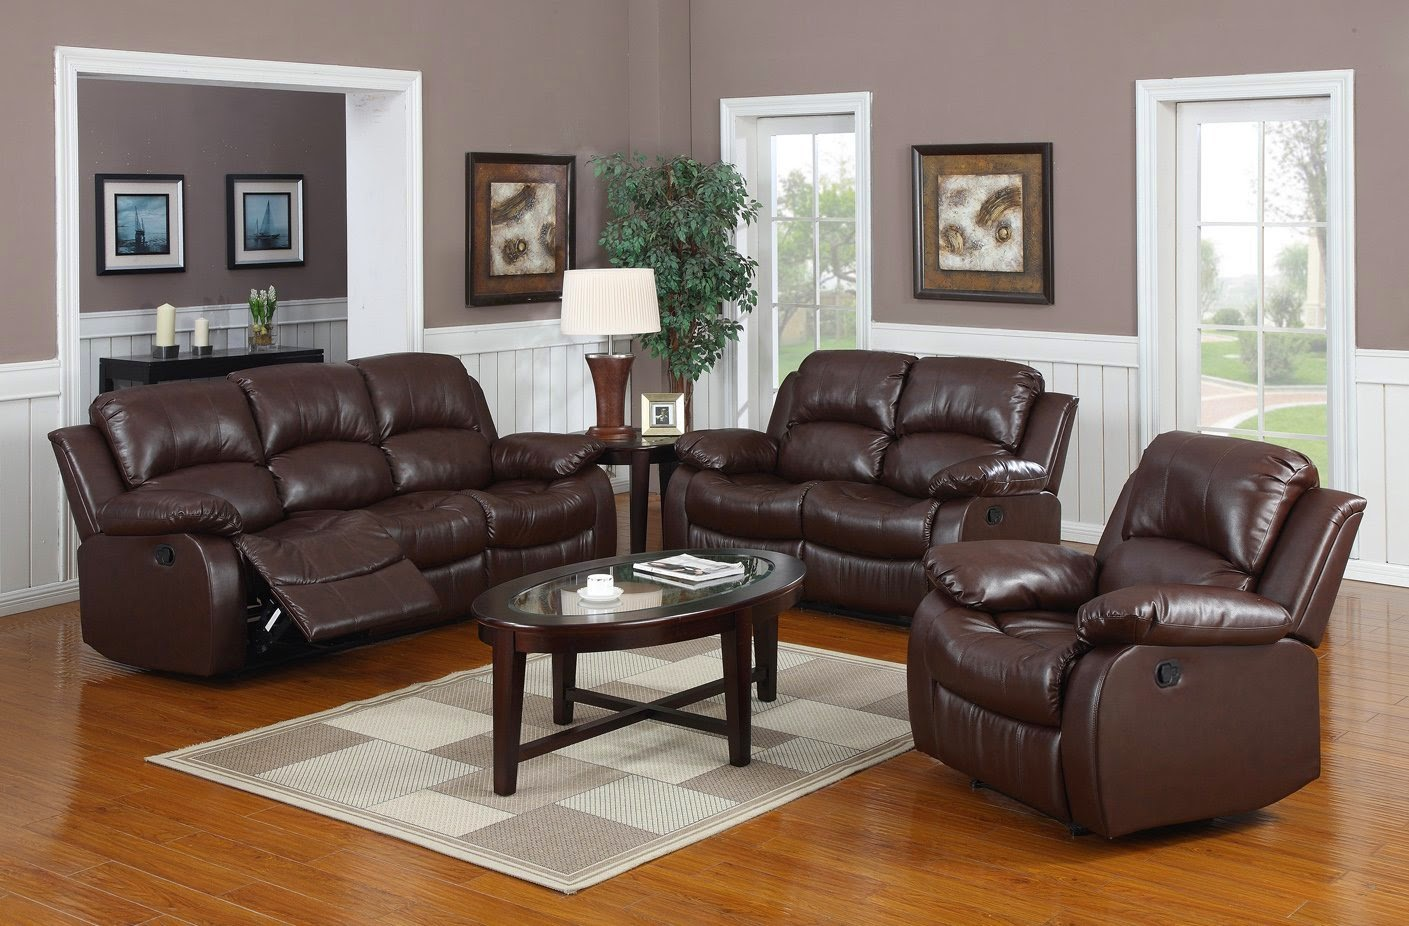 Milano Leather Recliner Sofa Set Reviews